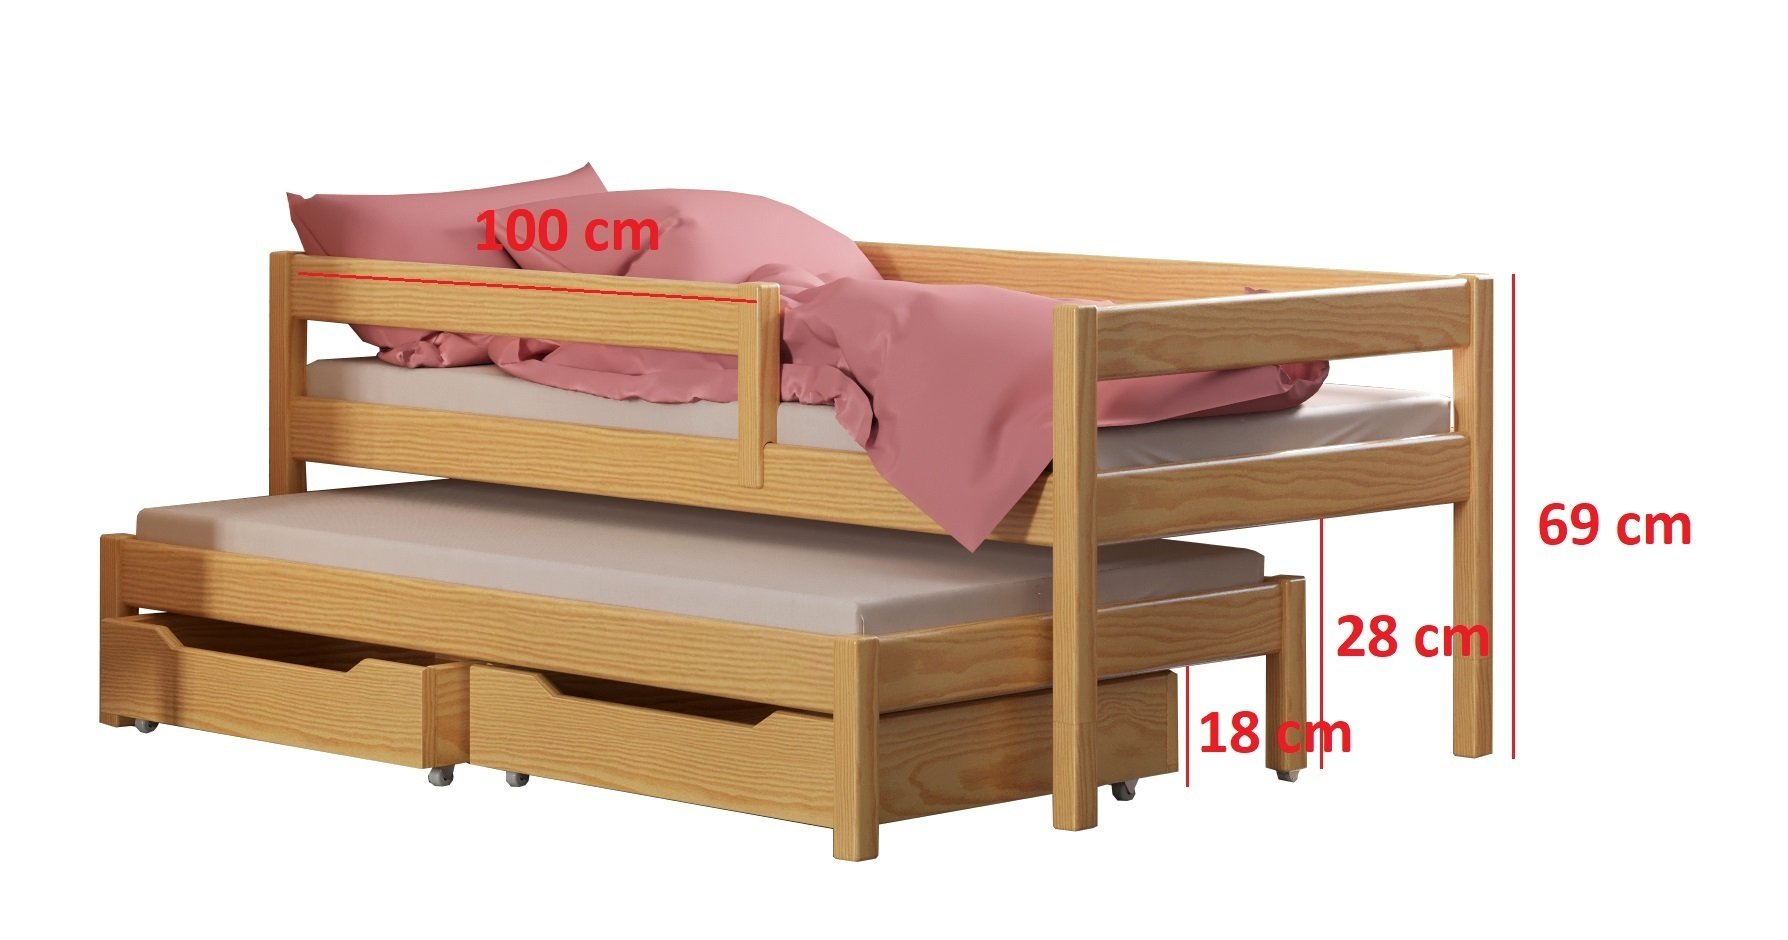 Maria single bed with trundle and drawers for kids made of solid wood - different sizes - 6 colours (Grey, 200x90 / 190x90) WNM Group Bed made entirely of exclusive solid pine wood, frame strength up to 300 kg Protective barrier for size 140x70 is 80cm for other sizes 105cm The bed is suitable for 10-12 cm mattresses. (Mattress is not included) 2